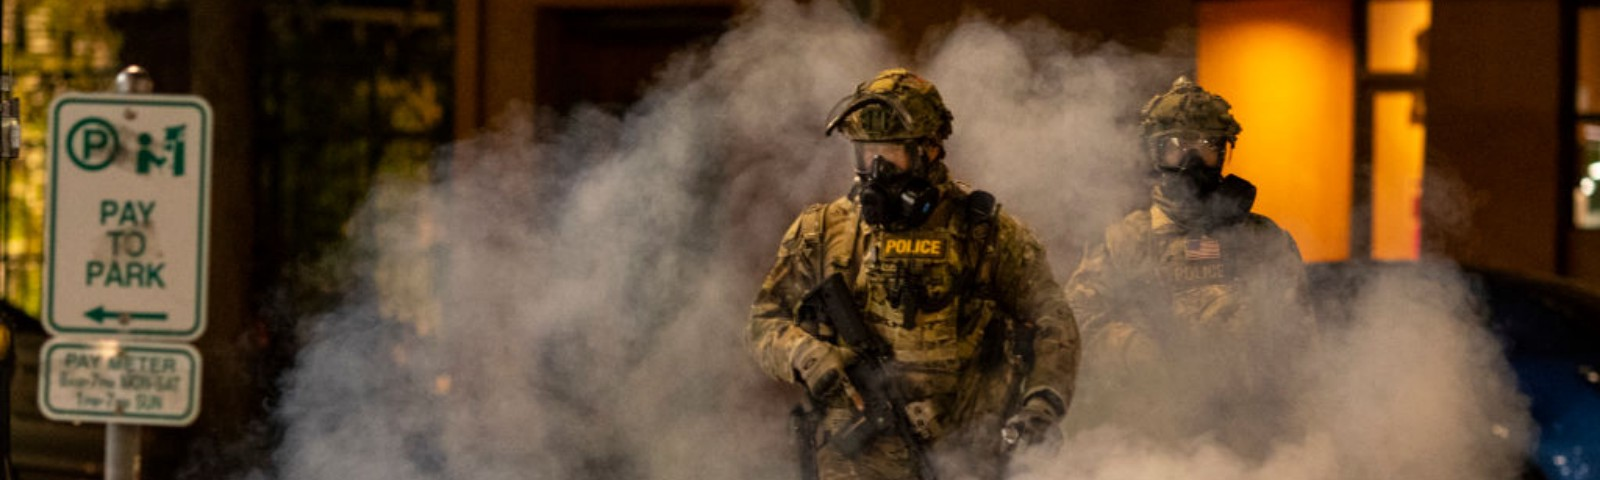 Federal officers in camoflague walk amidst tear gas while quelling protestors in Portland.